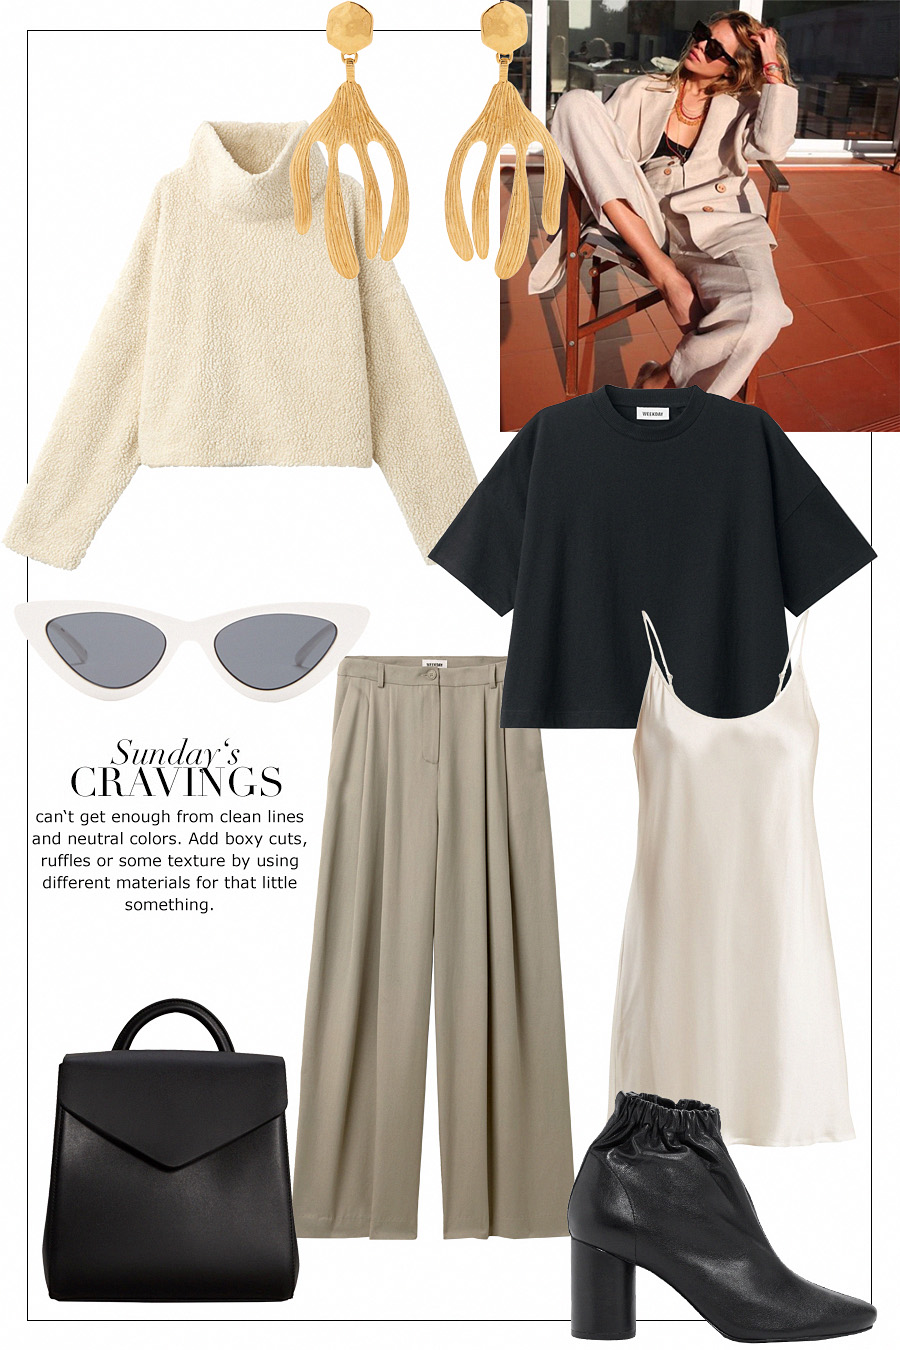 Teddy sweater, Gold-plated earrings, Boxy t-shirt, Cat-eye sunglasses, Wide pants, Satin slip dress, Backpack, Elastic leather boots